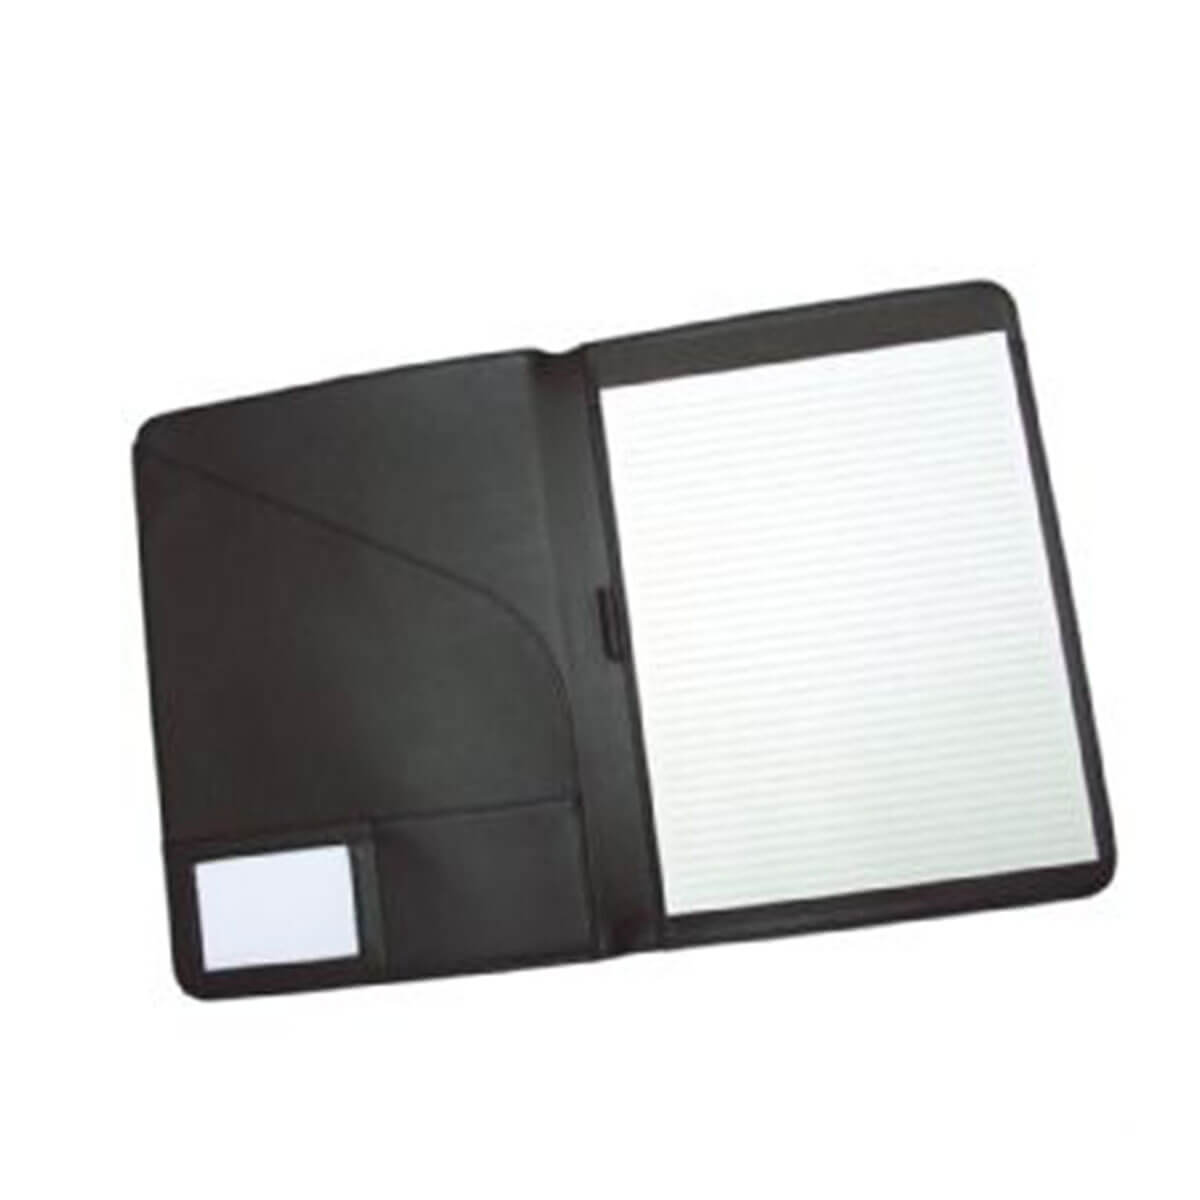 A4 Pad Cover-Black.